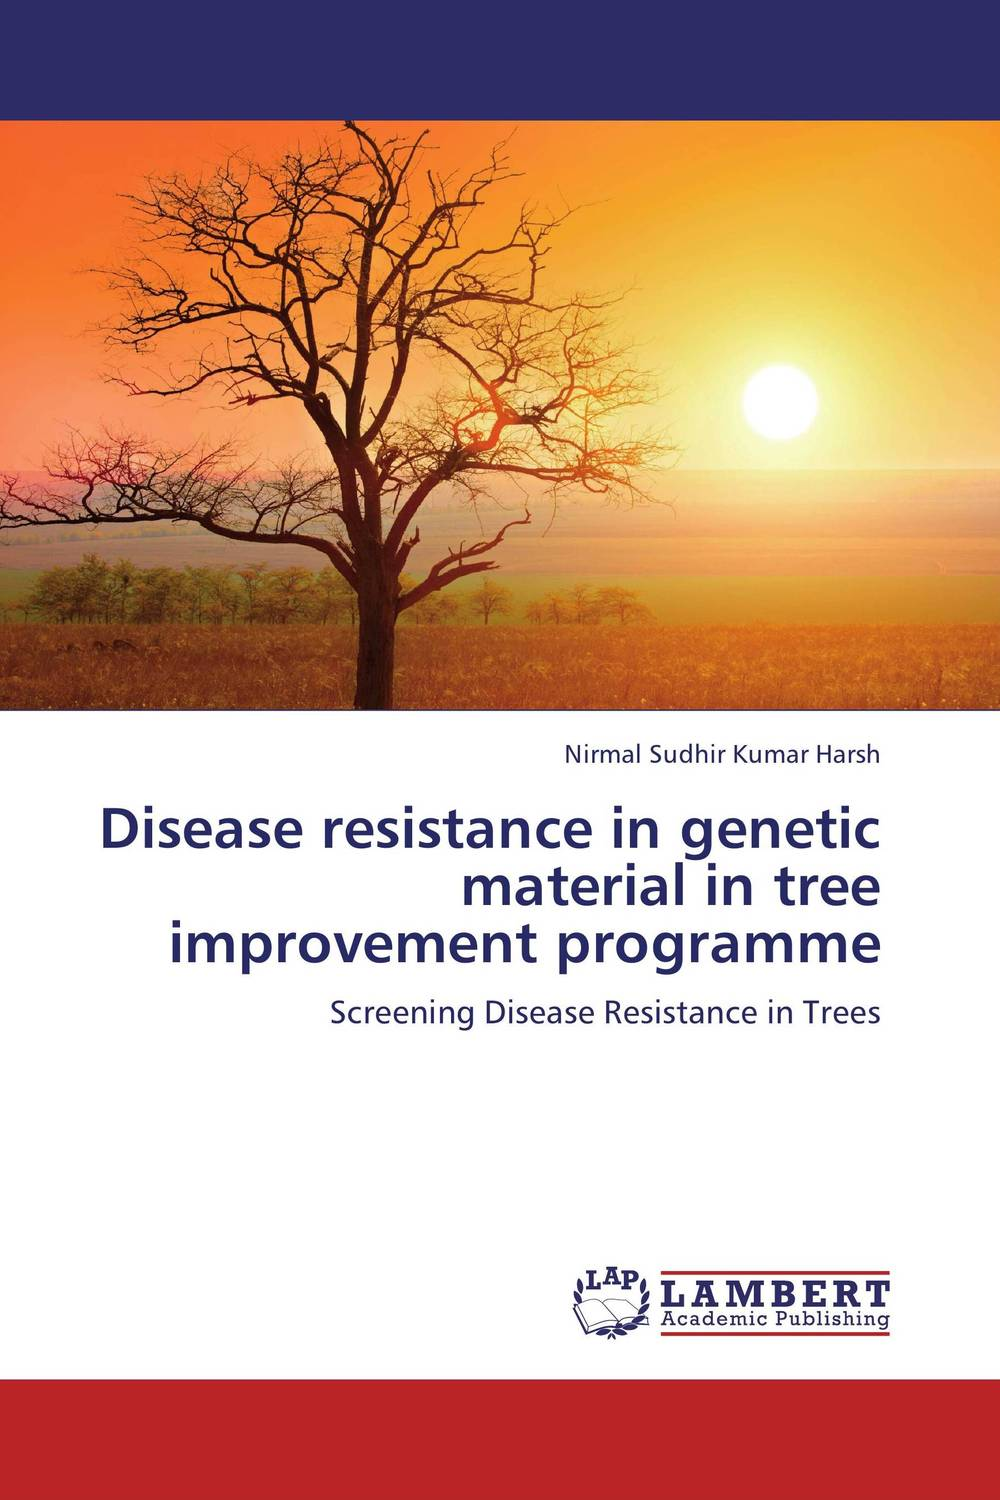 Disease resistance in genetic material in tree improvement programme polymorphisms at candidate genes for disease resistance in chicken